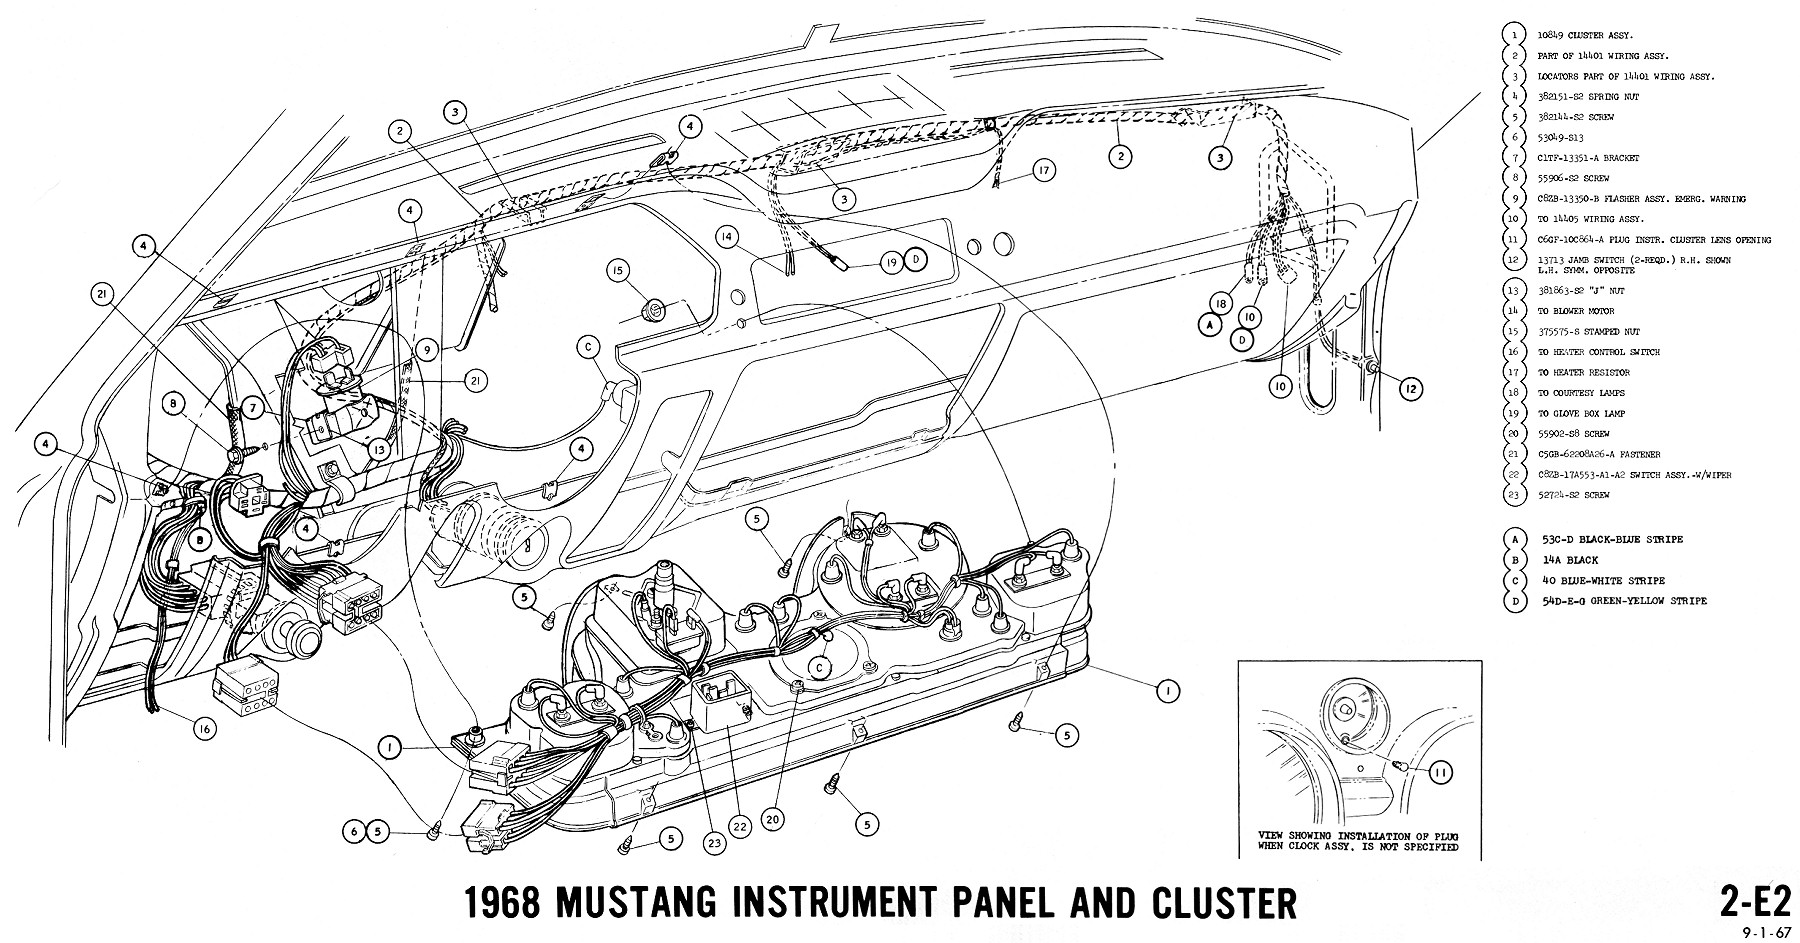 1968 mustang wiring diagram instruments 2 1968 mustang wiring diagrams and vacuum schematics average joe 68 mustang wiring harness at reclaimingppi.co